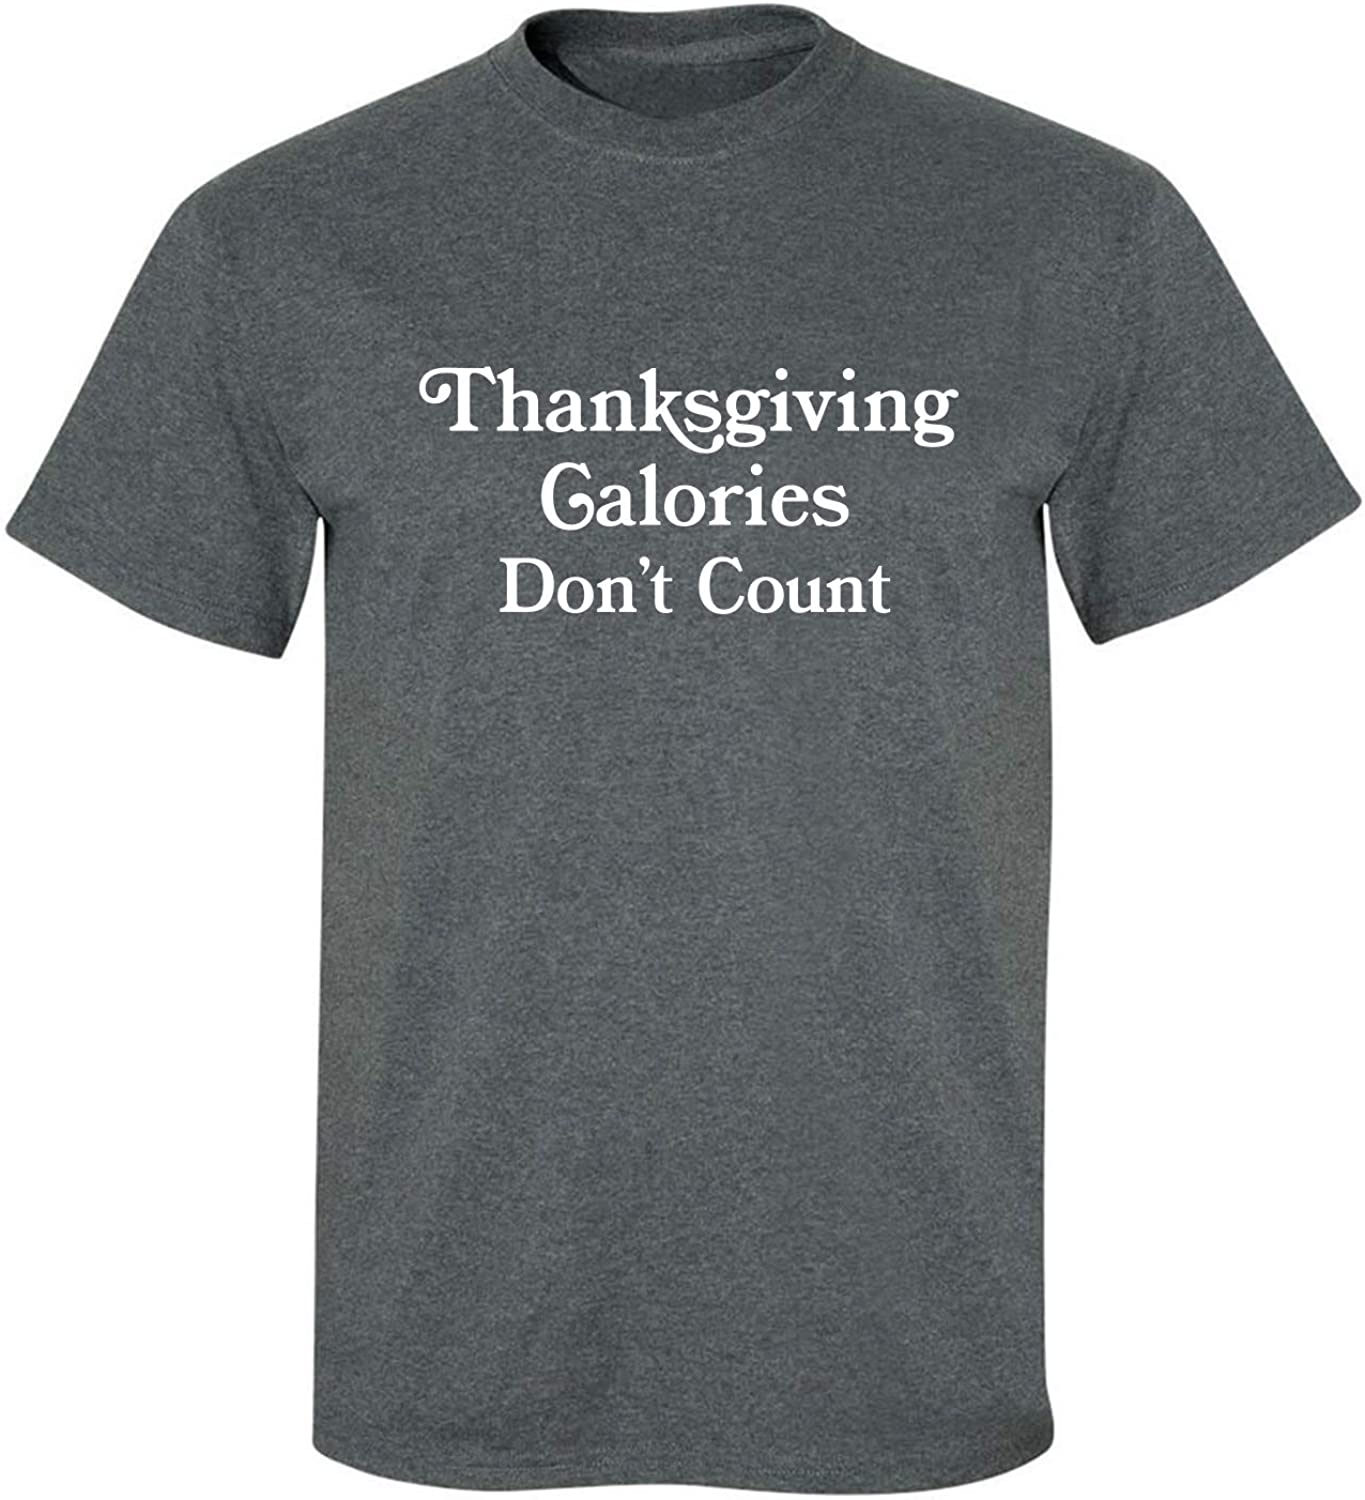 Thanksgiving Calories Don't Count Adult T-Shirt in Dark Heather - XXXX-Large